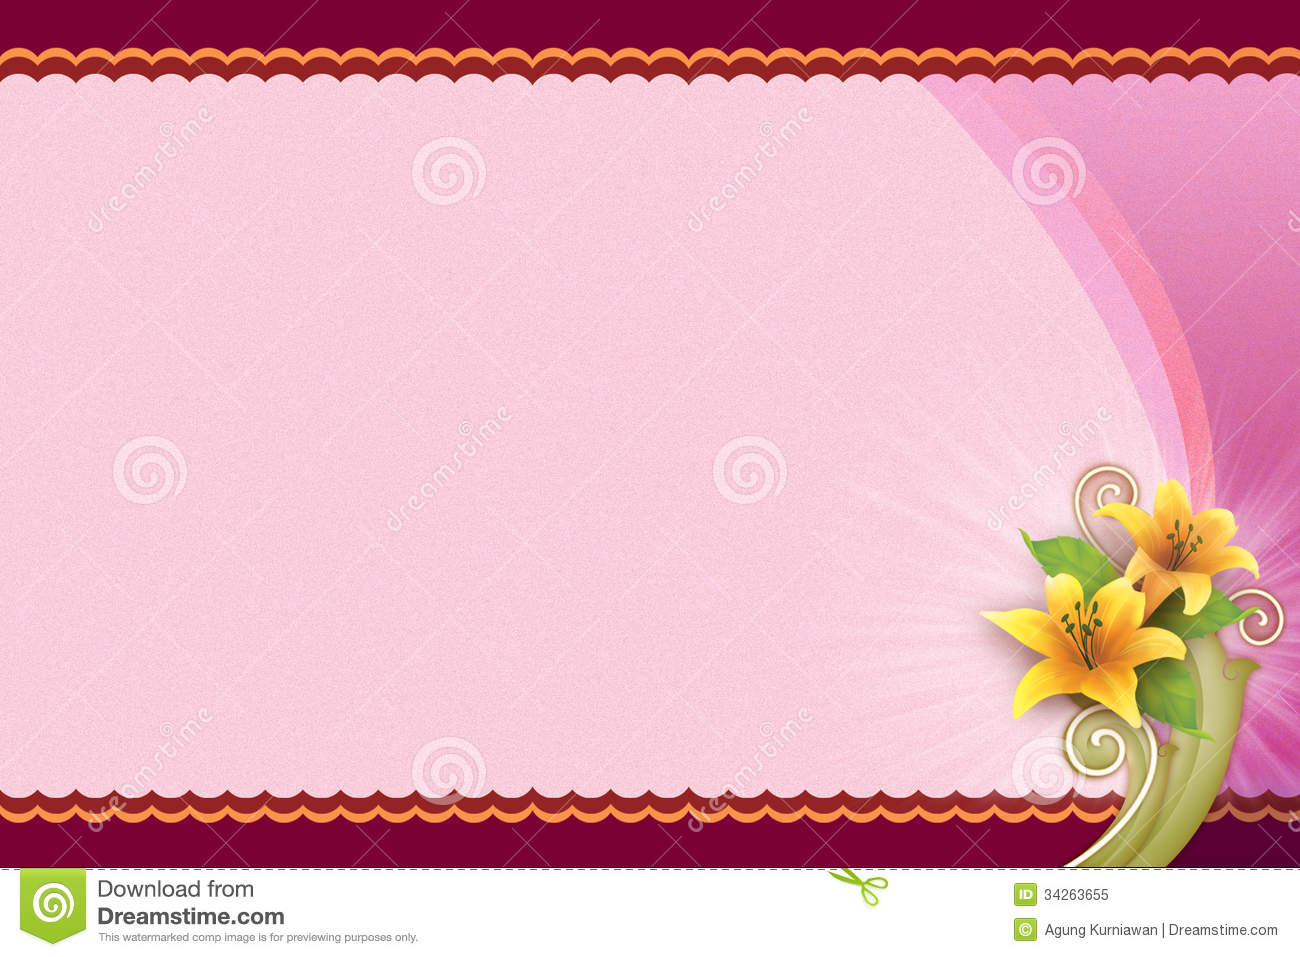 Hd Blank Birthday Background : Pink Background With Flower For Blank Card Royalty Free Stock Photo ...